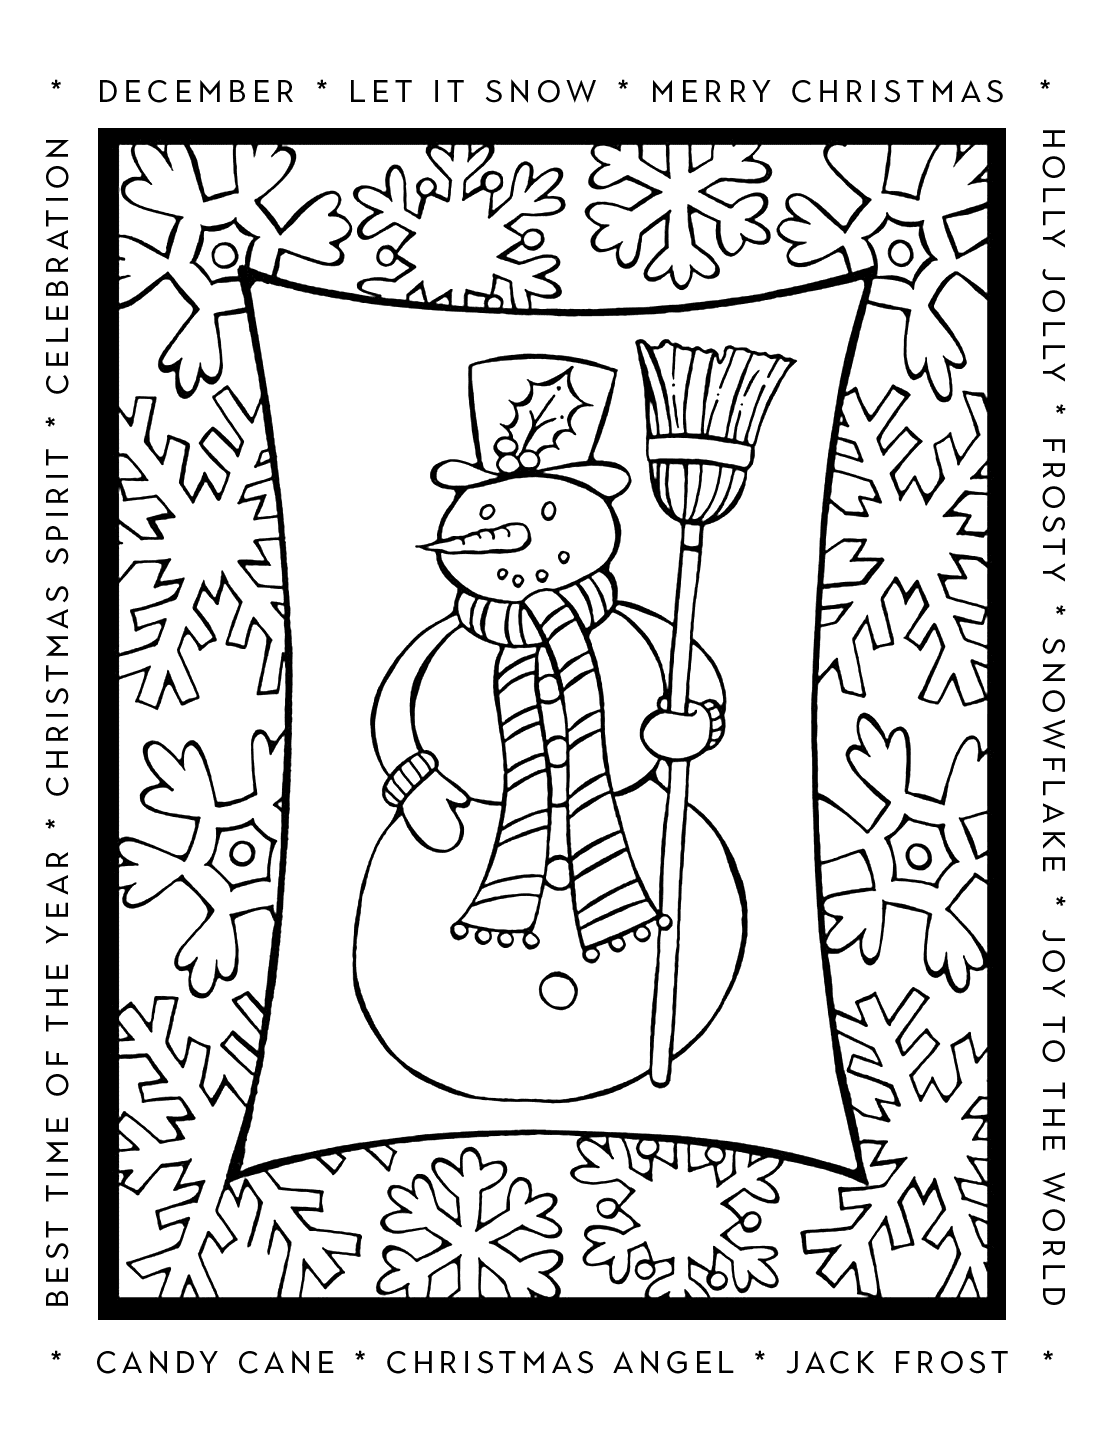 December Snowman Winter Sayings Coloring Page